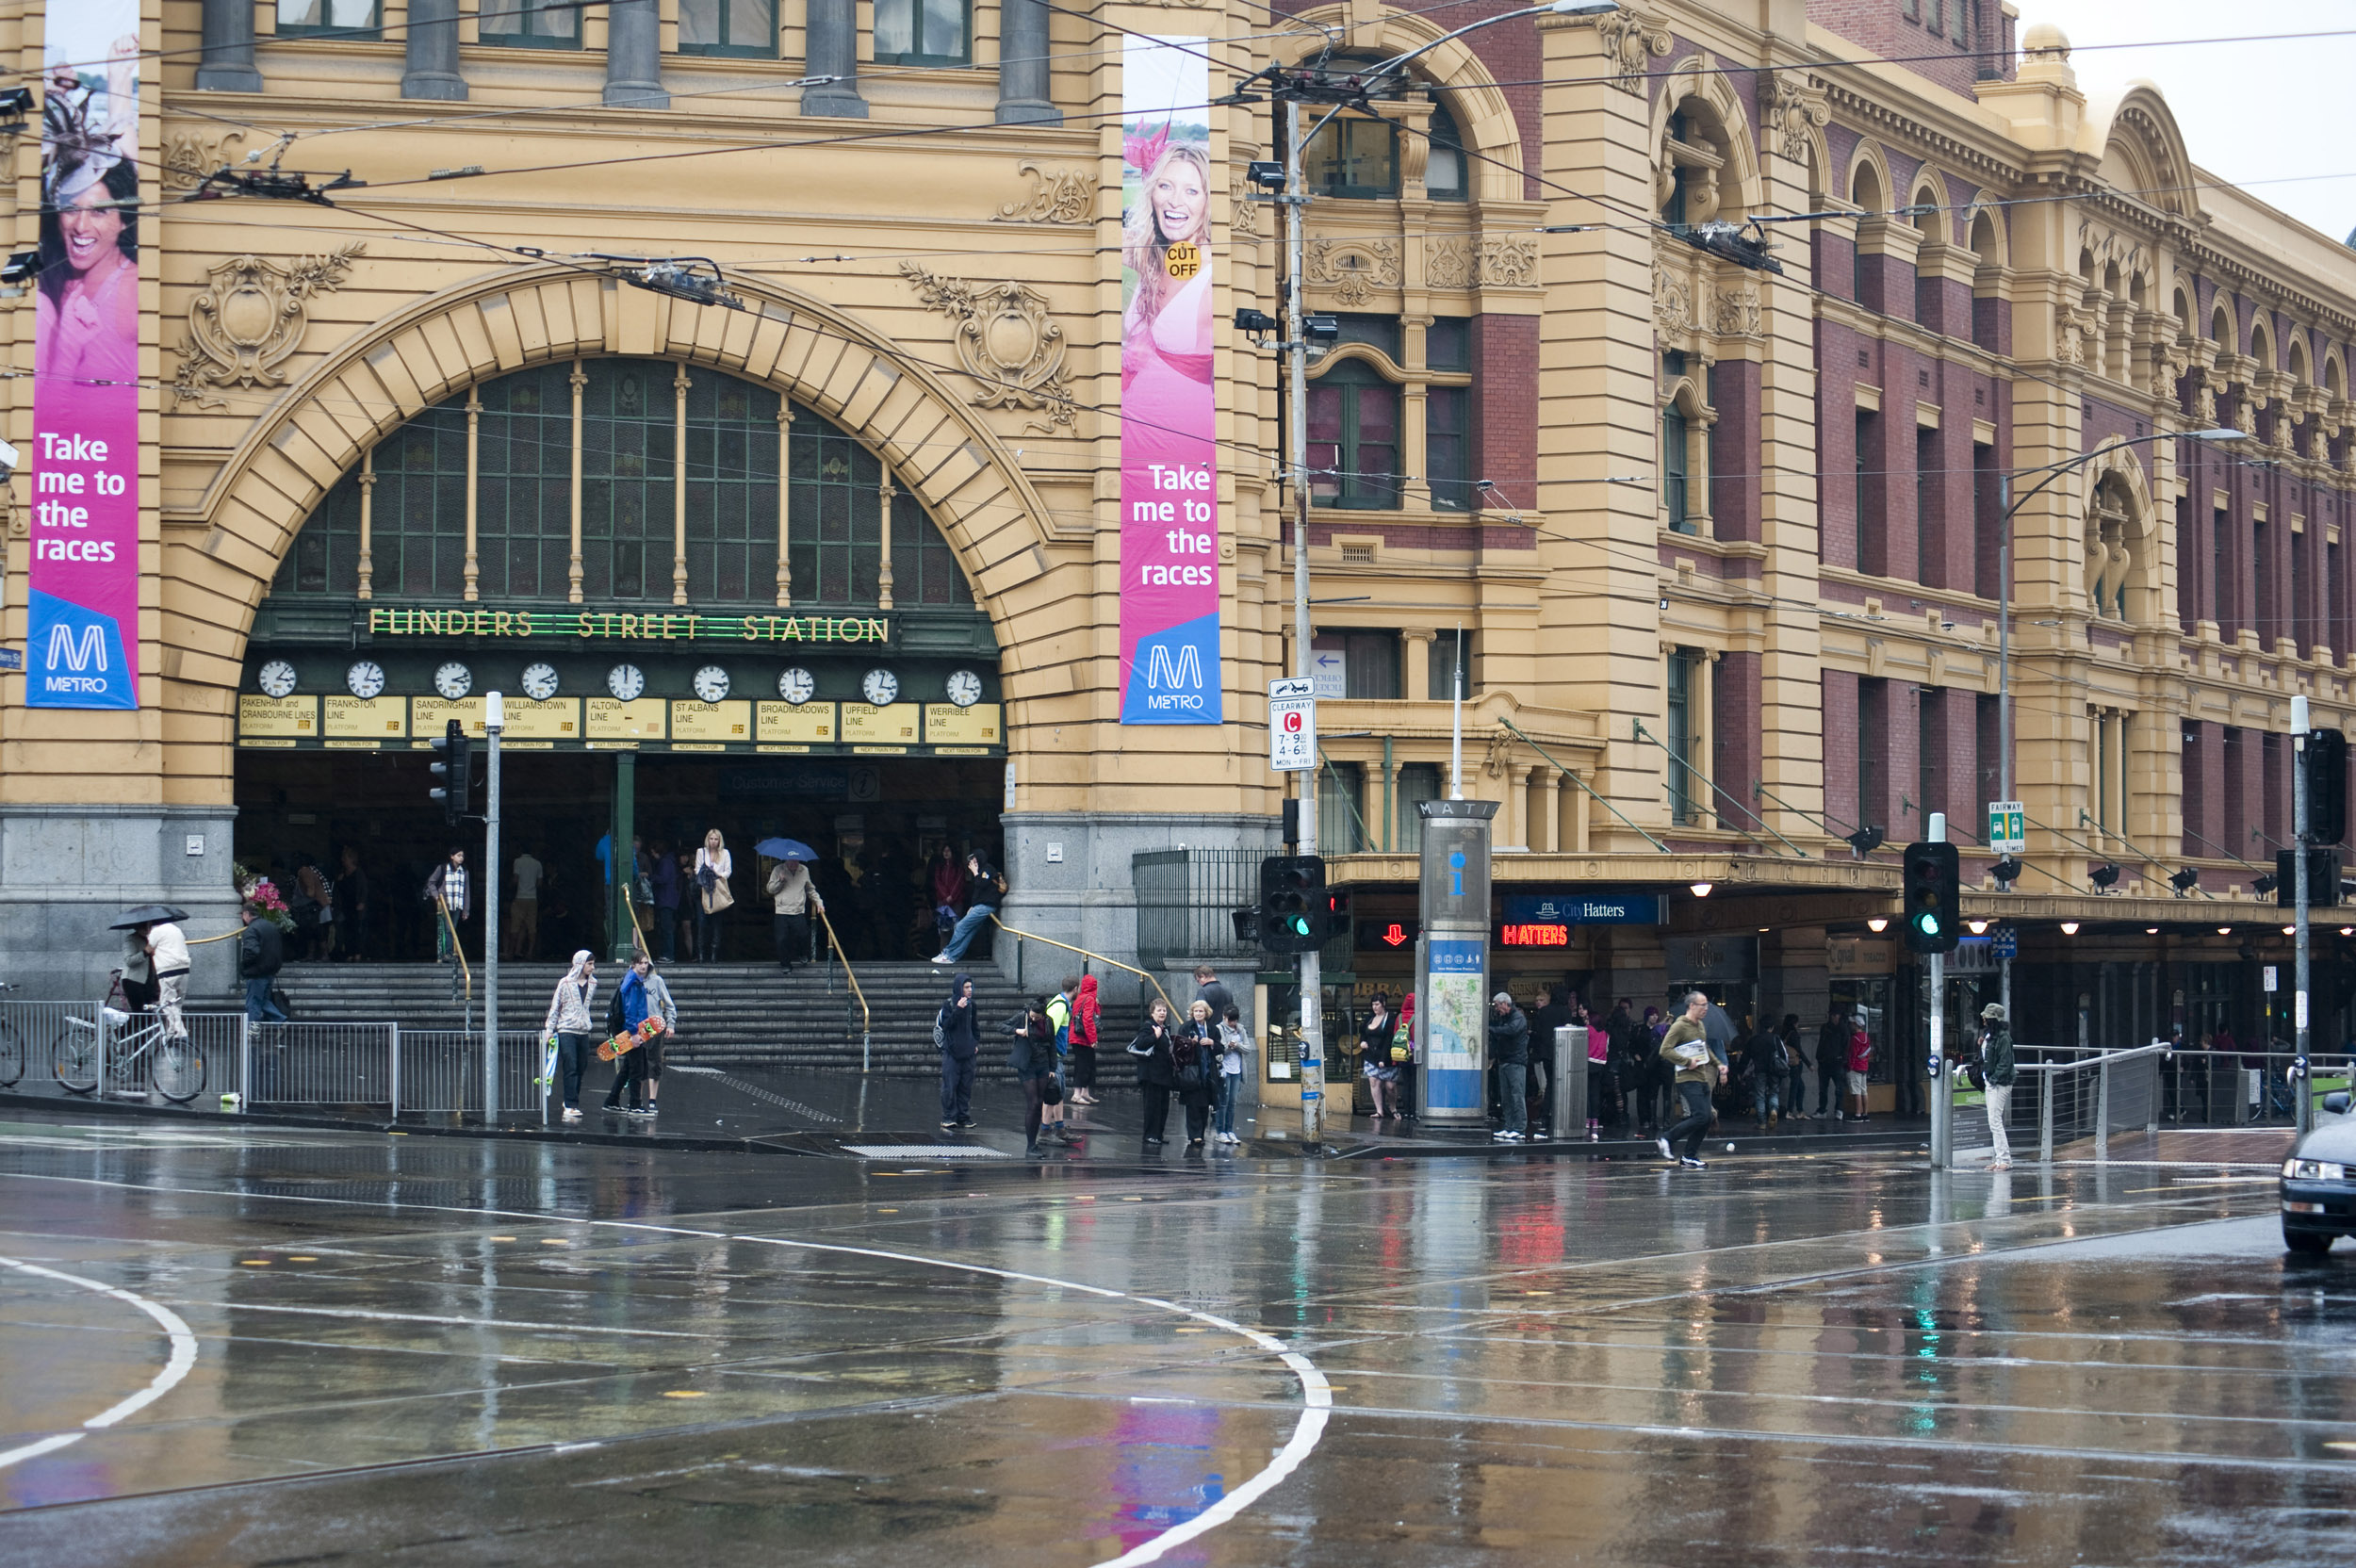 Flinders Street, Melbourne, Australia in the rain with the arched entrance to the station across the street